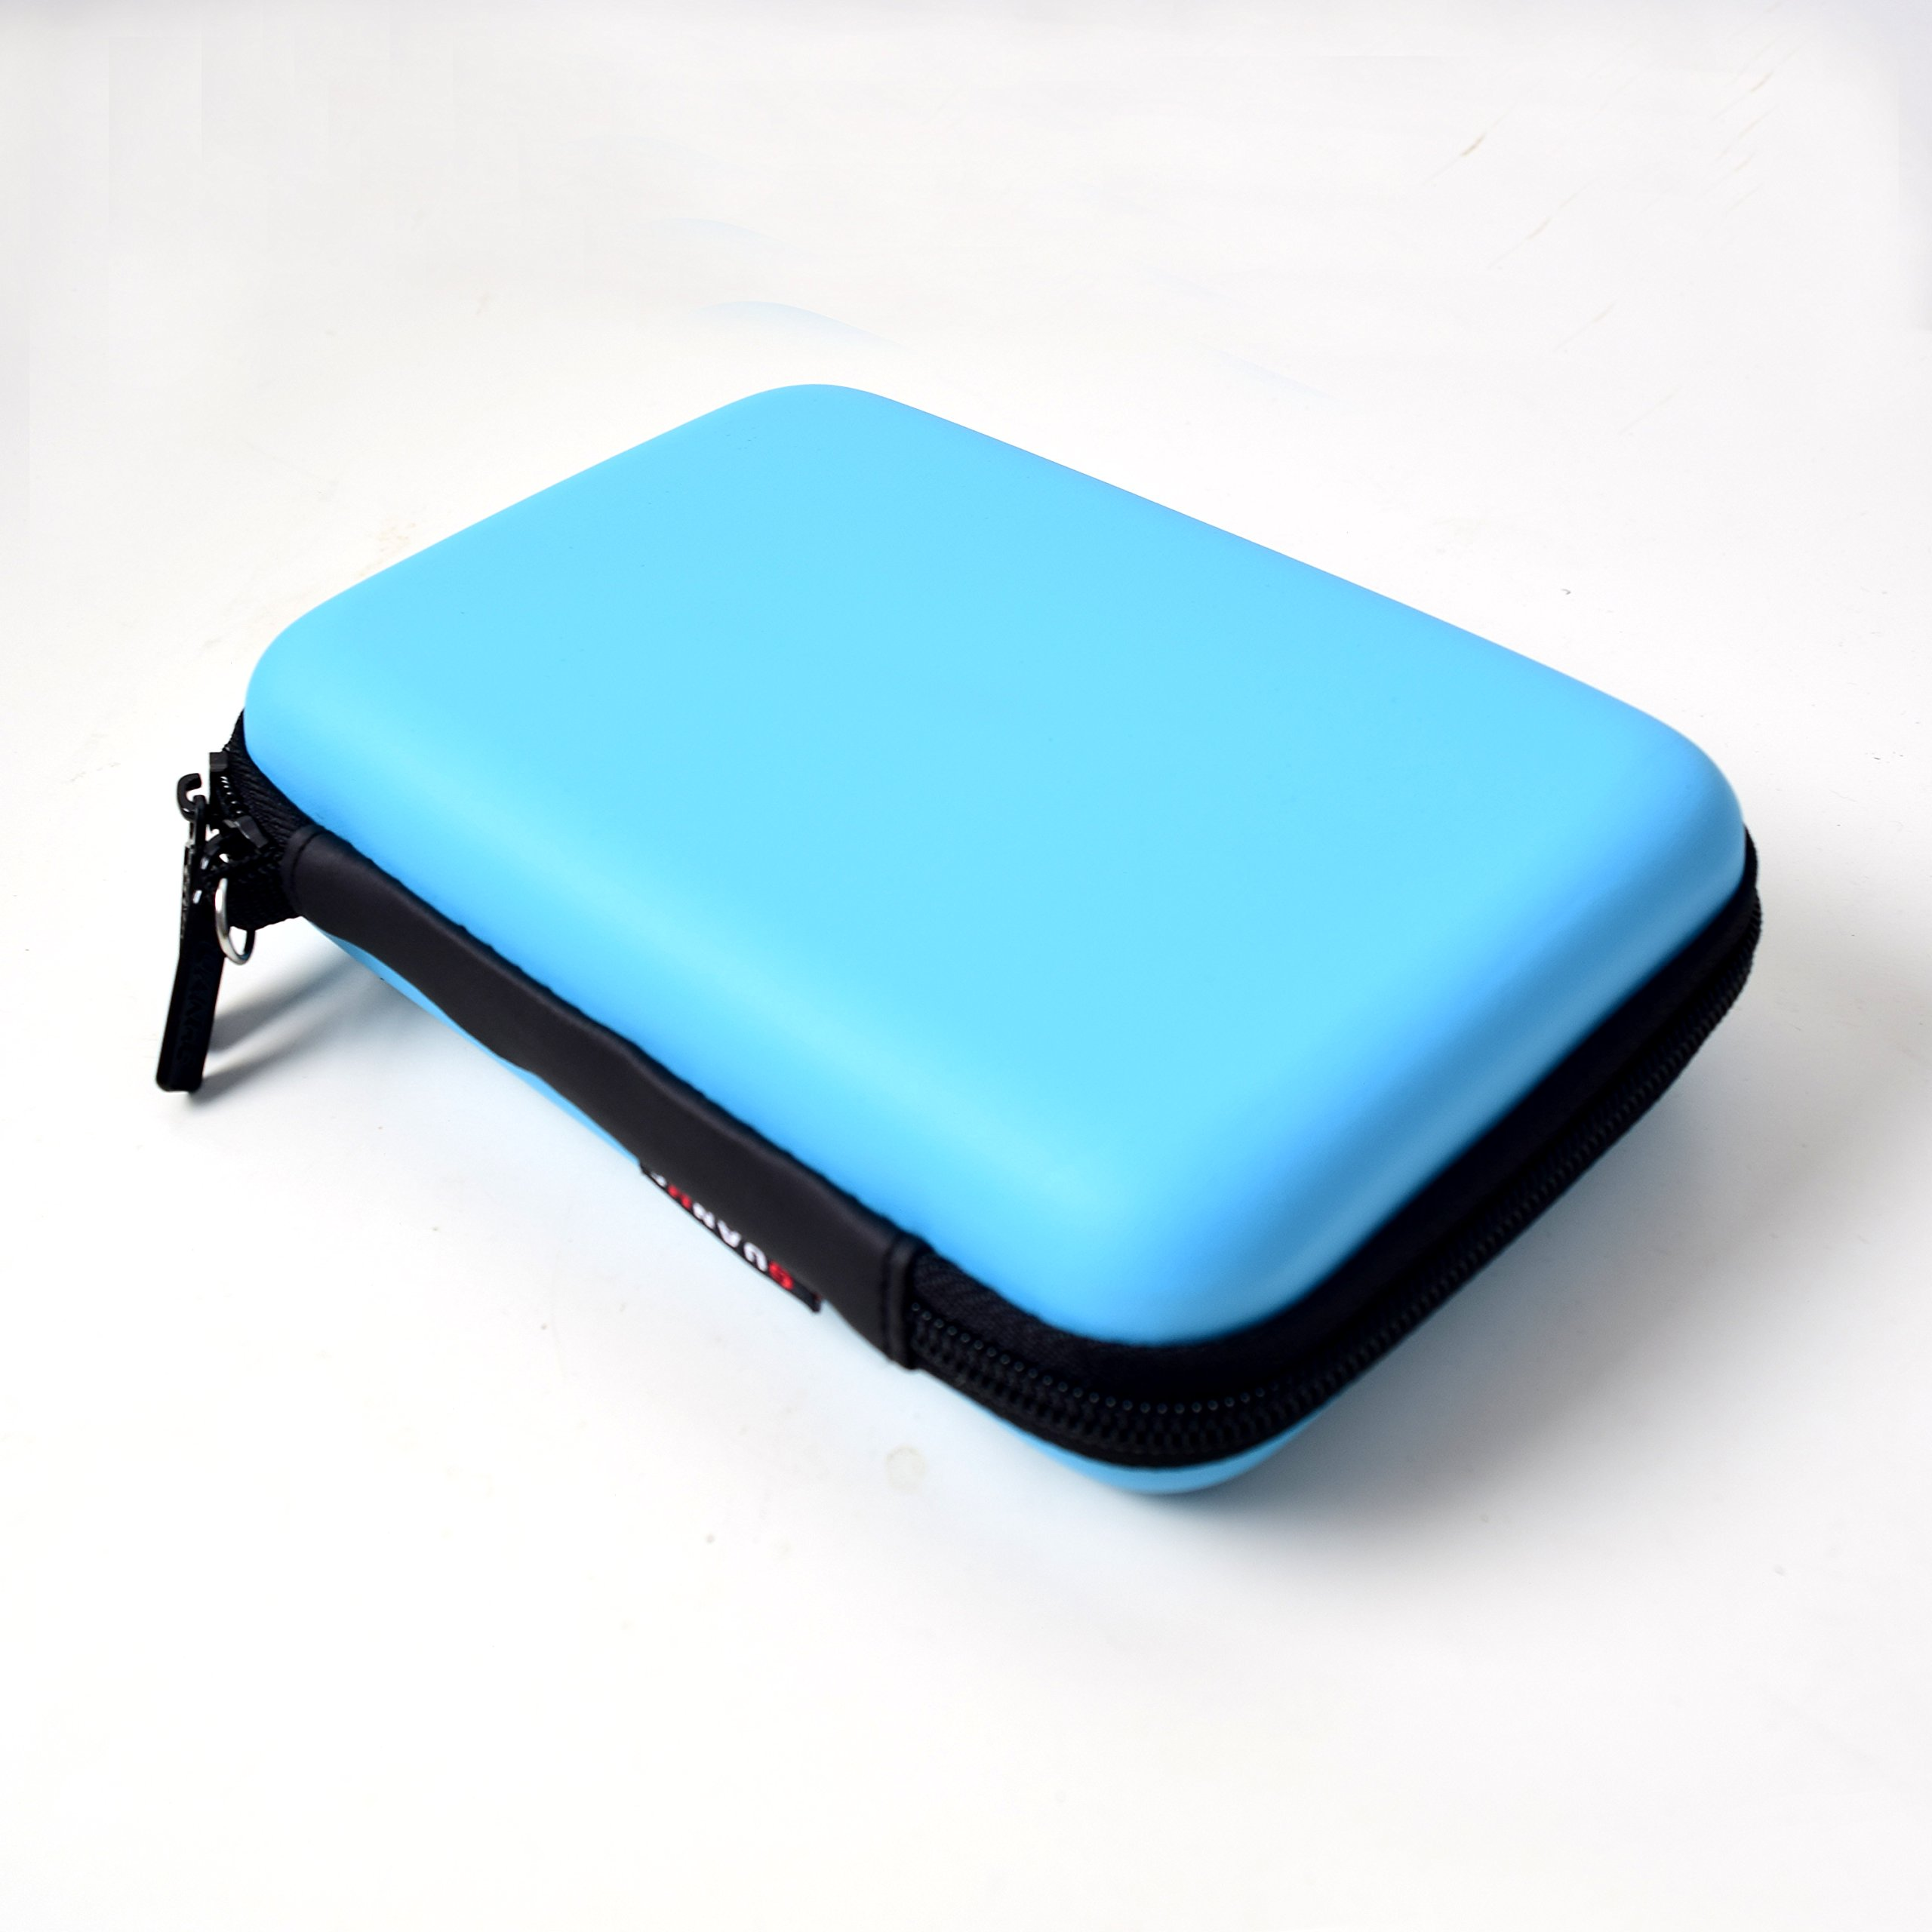 EKYLIN Strong Carrying Case for Mini Projector and Accessories Portable Mobile Protection (Blue) by EKYLIN